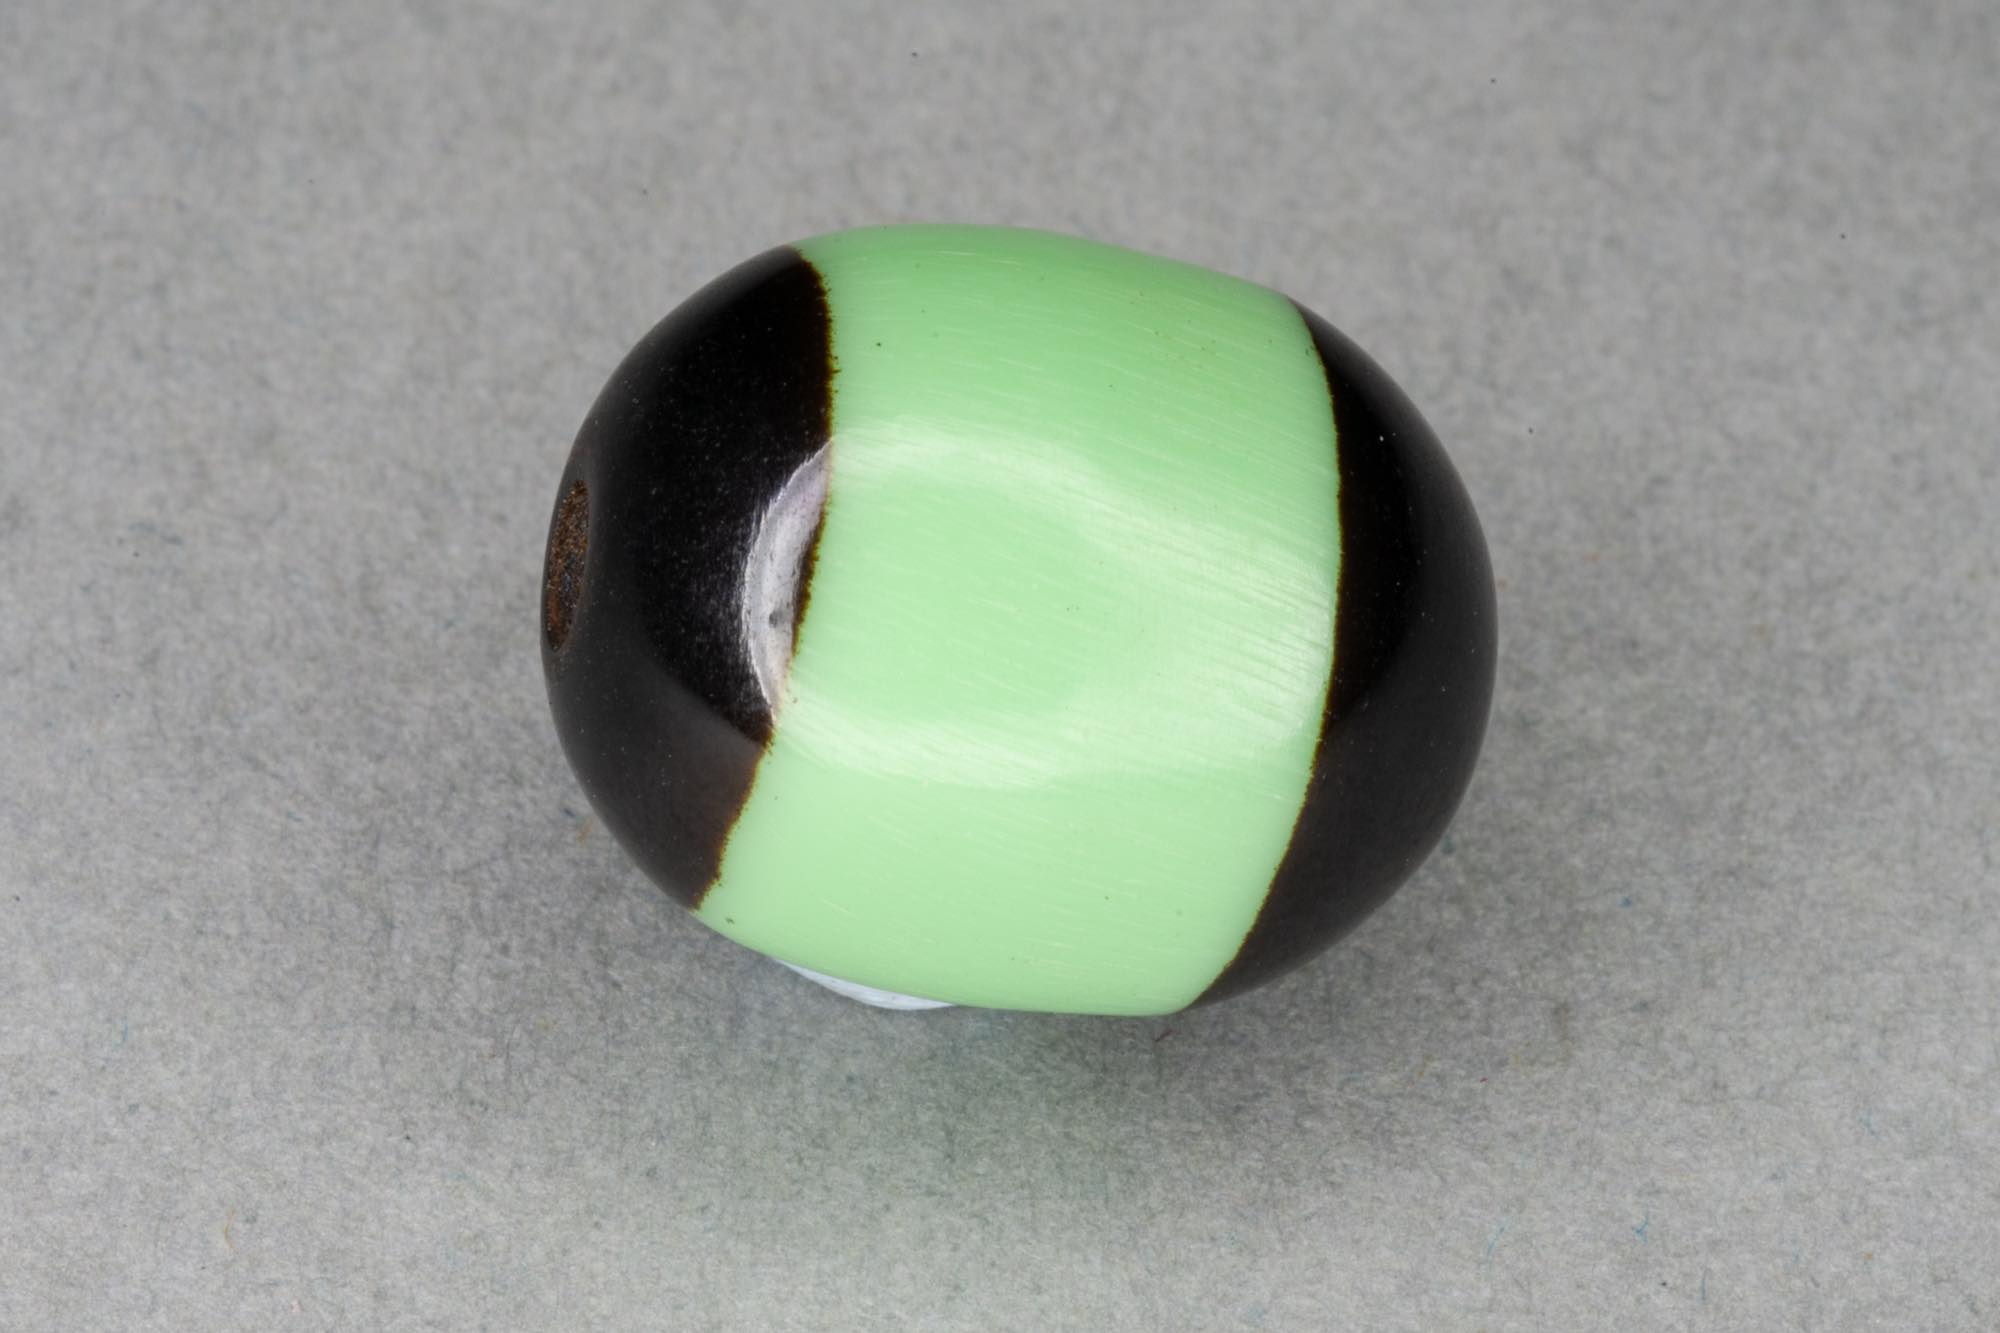 Green Oval Resin Bead With Black Ends, 14x11mm, 1.5mm hole